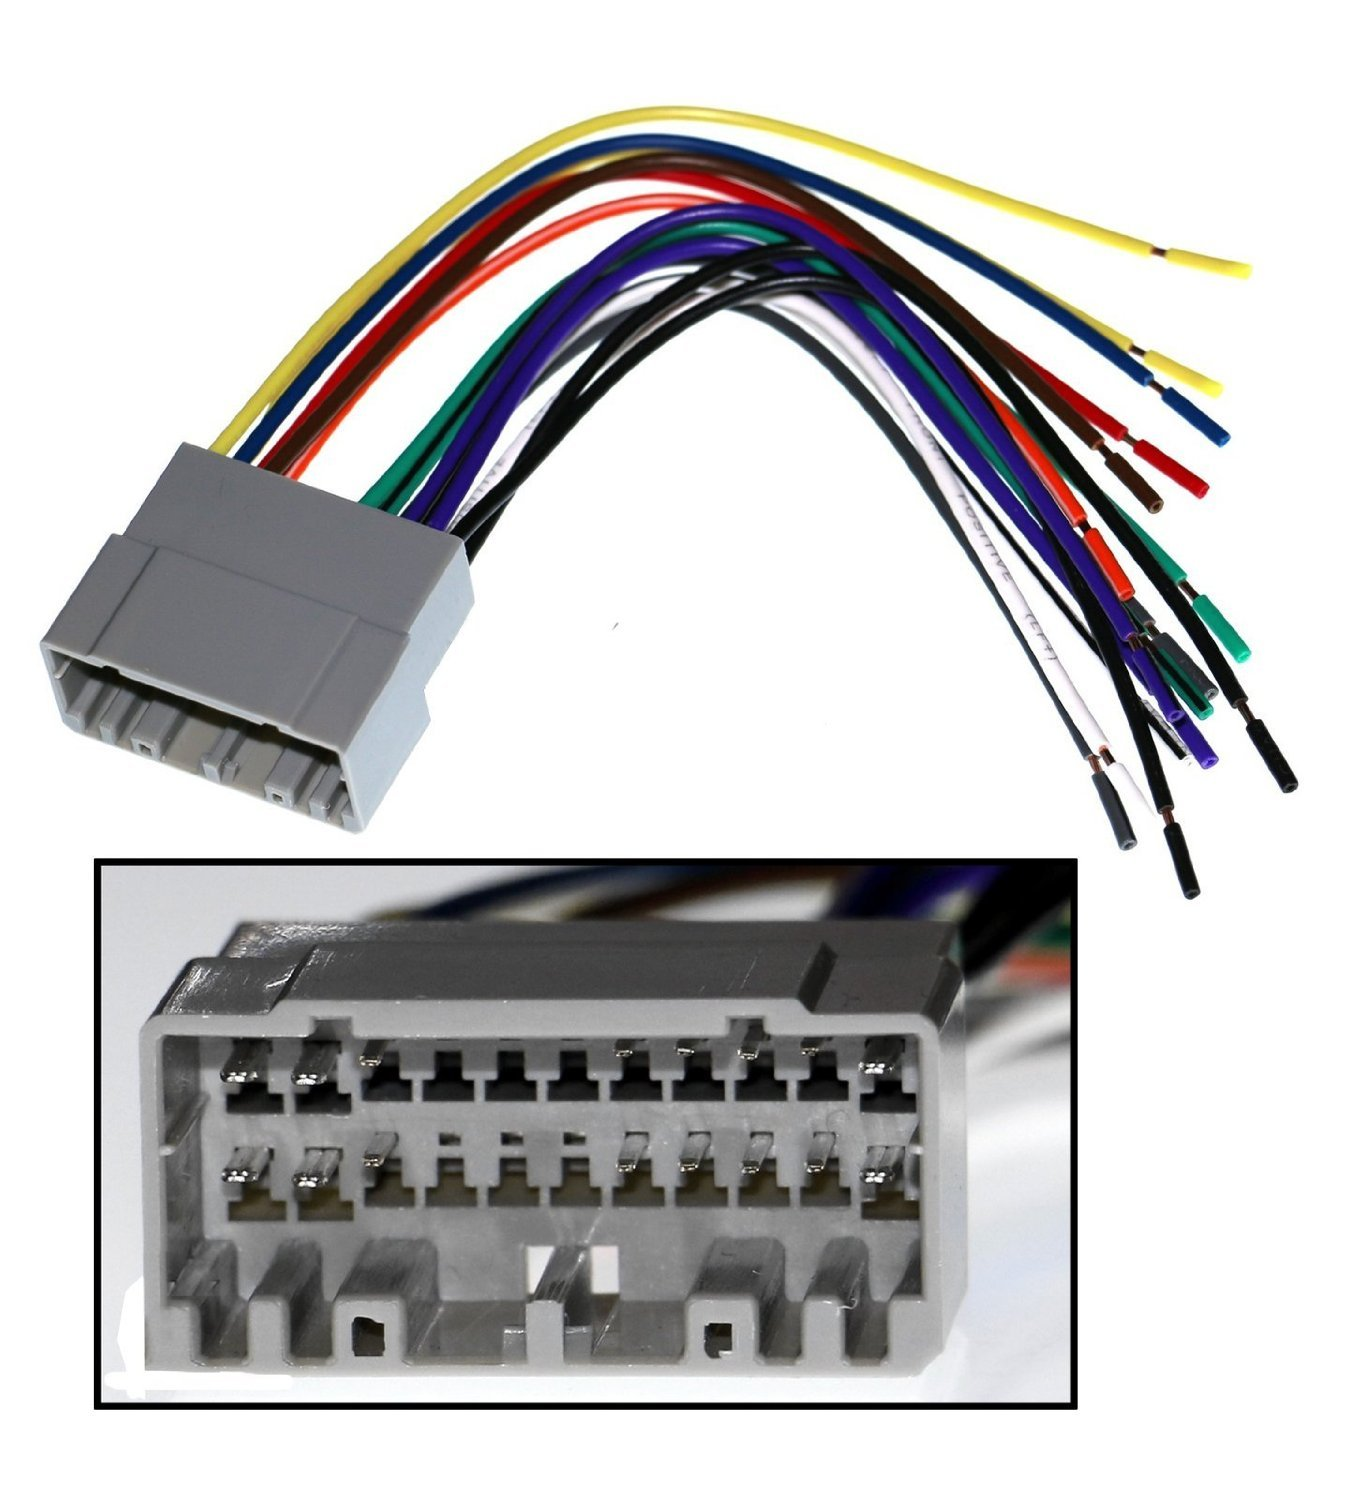 710Q%2BKgavVL._SL1500_ amazon com pioneer car stereo reciever dash install mounting kit car wiring harness at gsmx.co